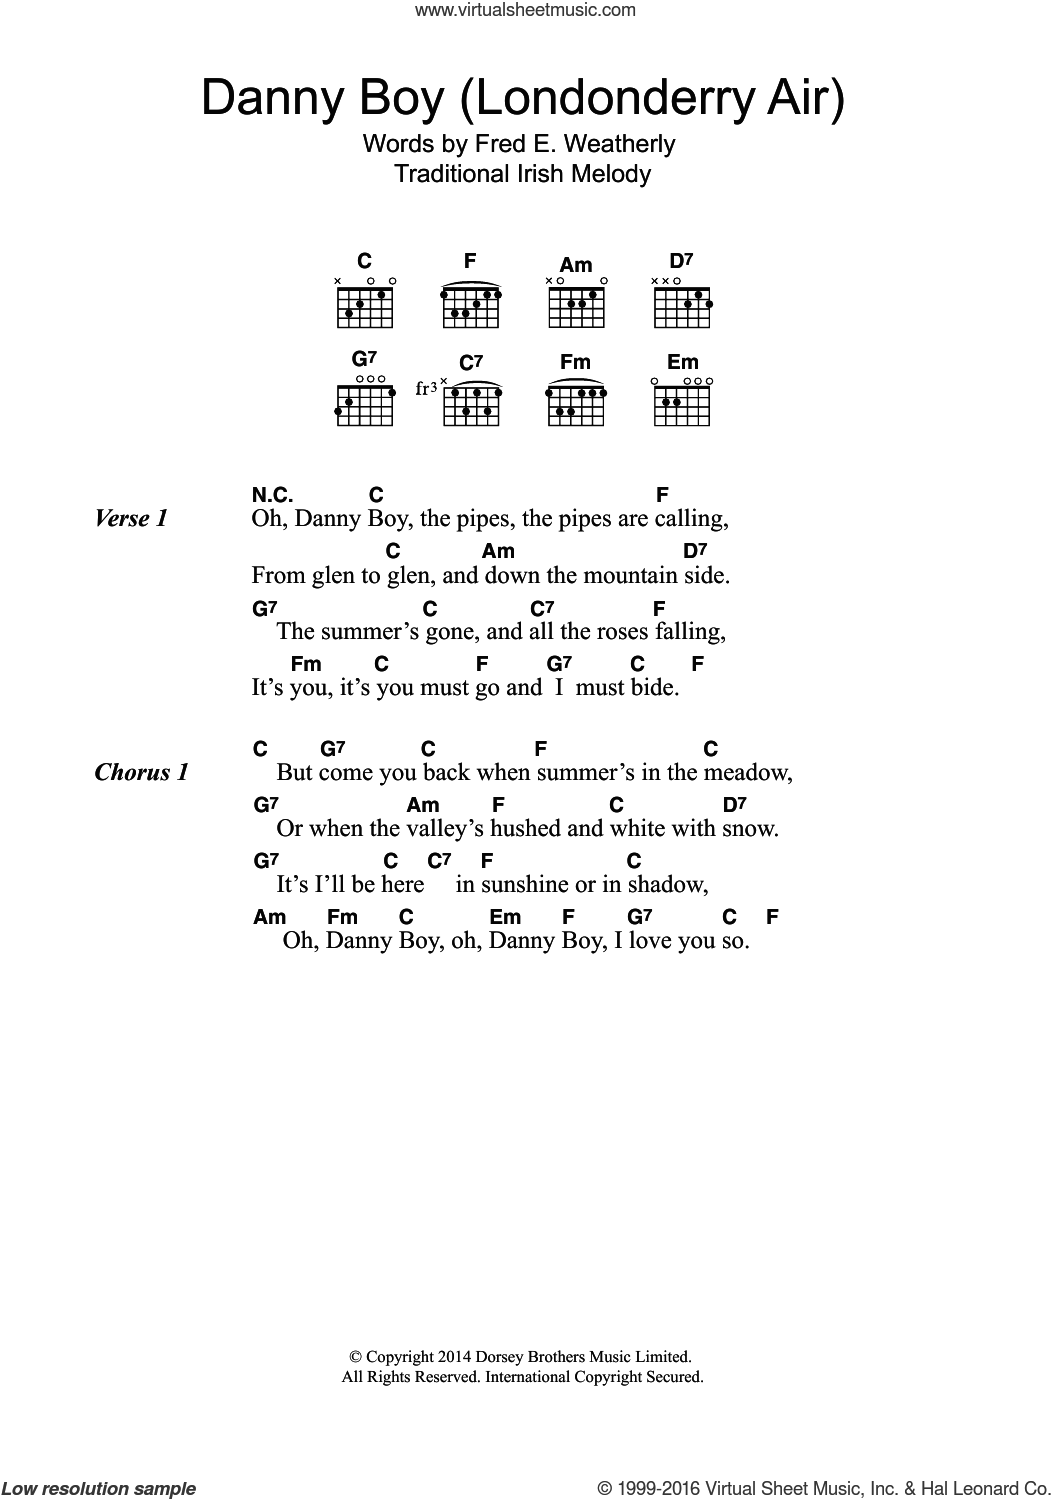 Danny Boy Londonderry Air Sheet Music For Guitar Chords Pdf